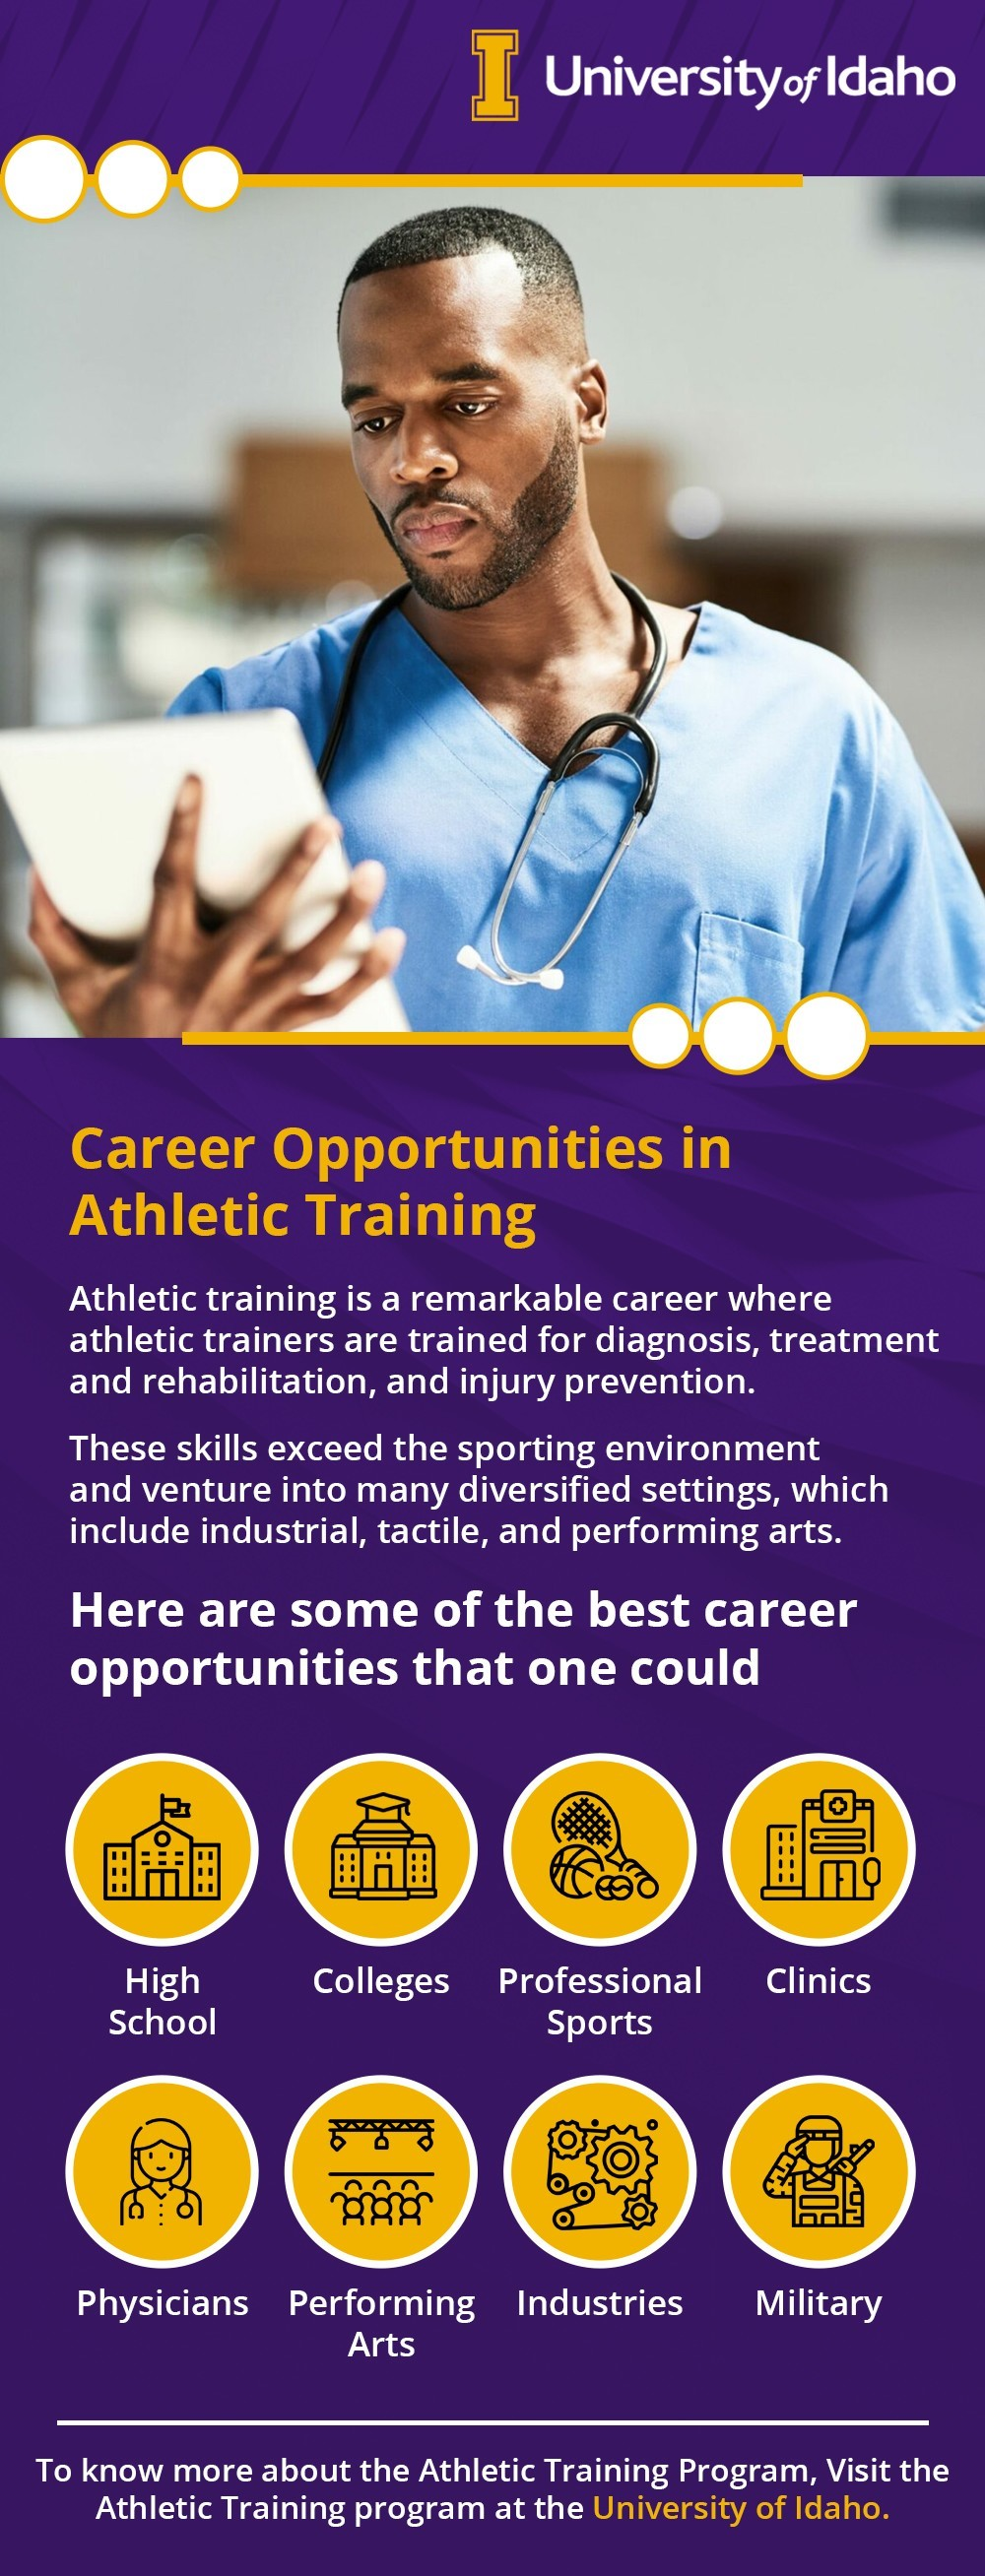 Career Opportunities in Athletic Training